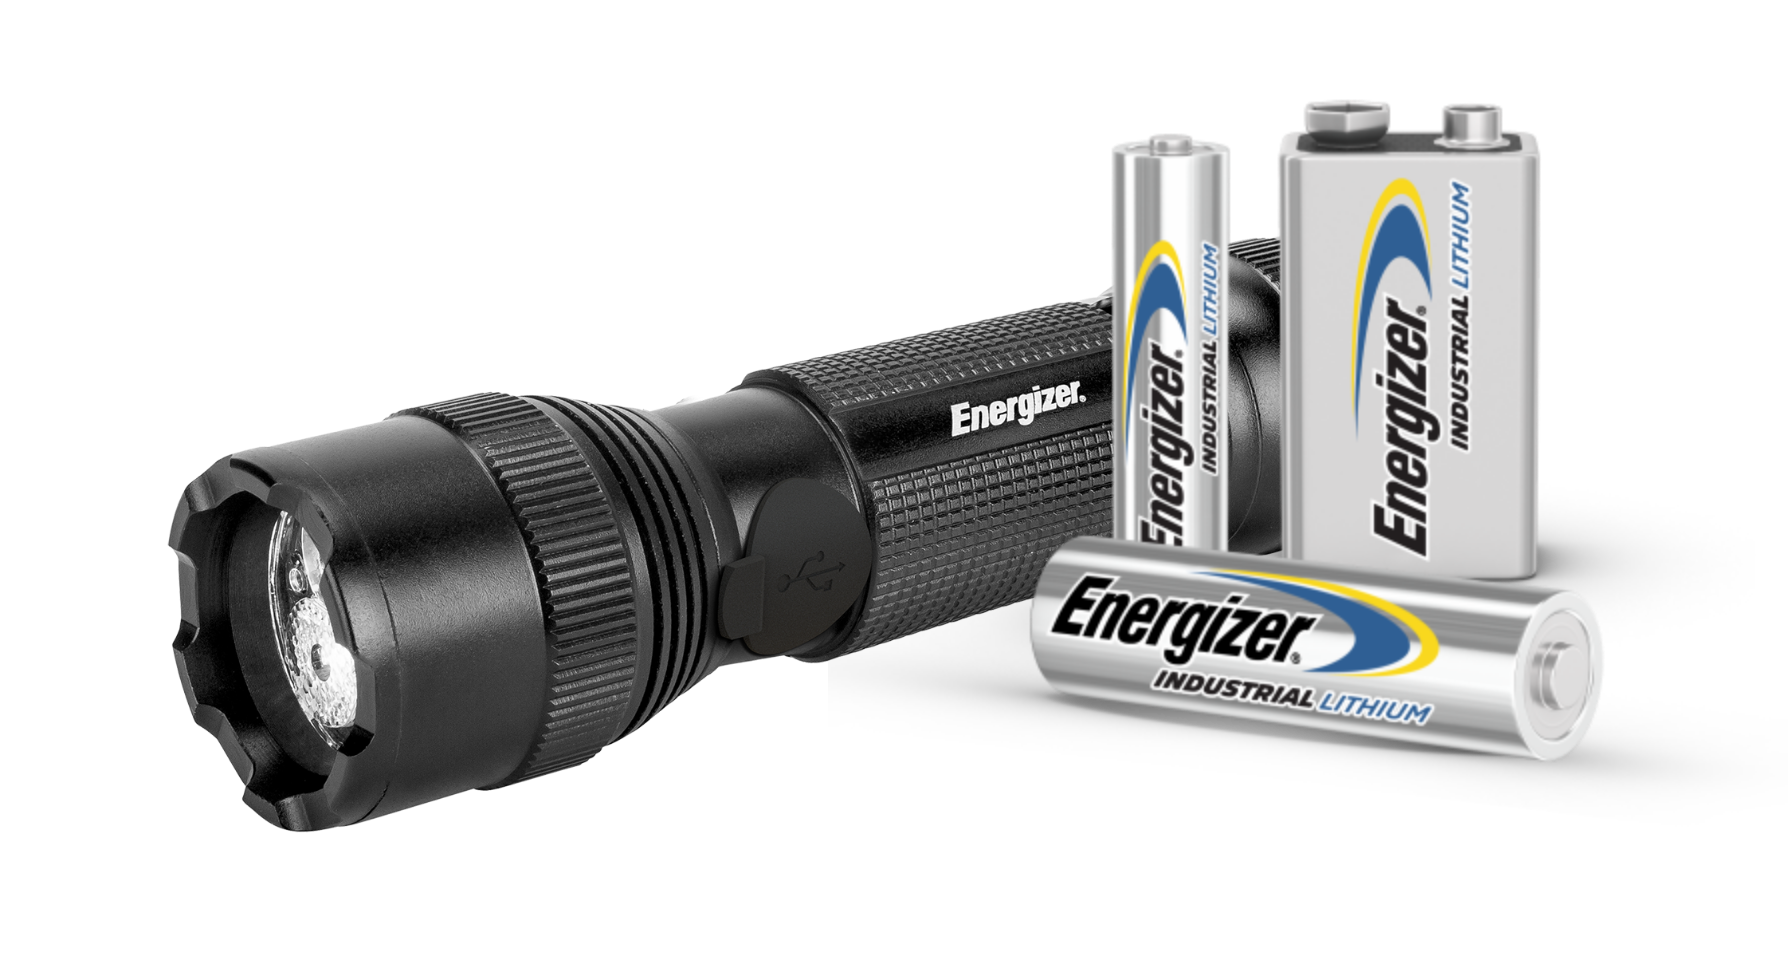 an Energizer Flashlight and 3 Energizer Industrial Lithium Batteries